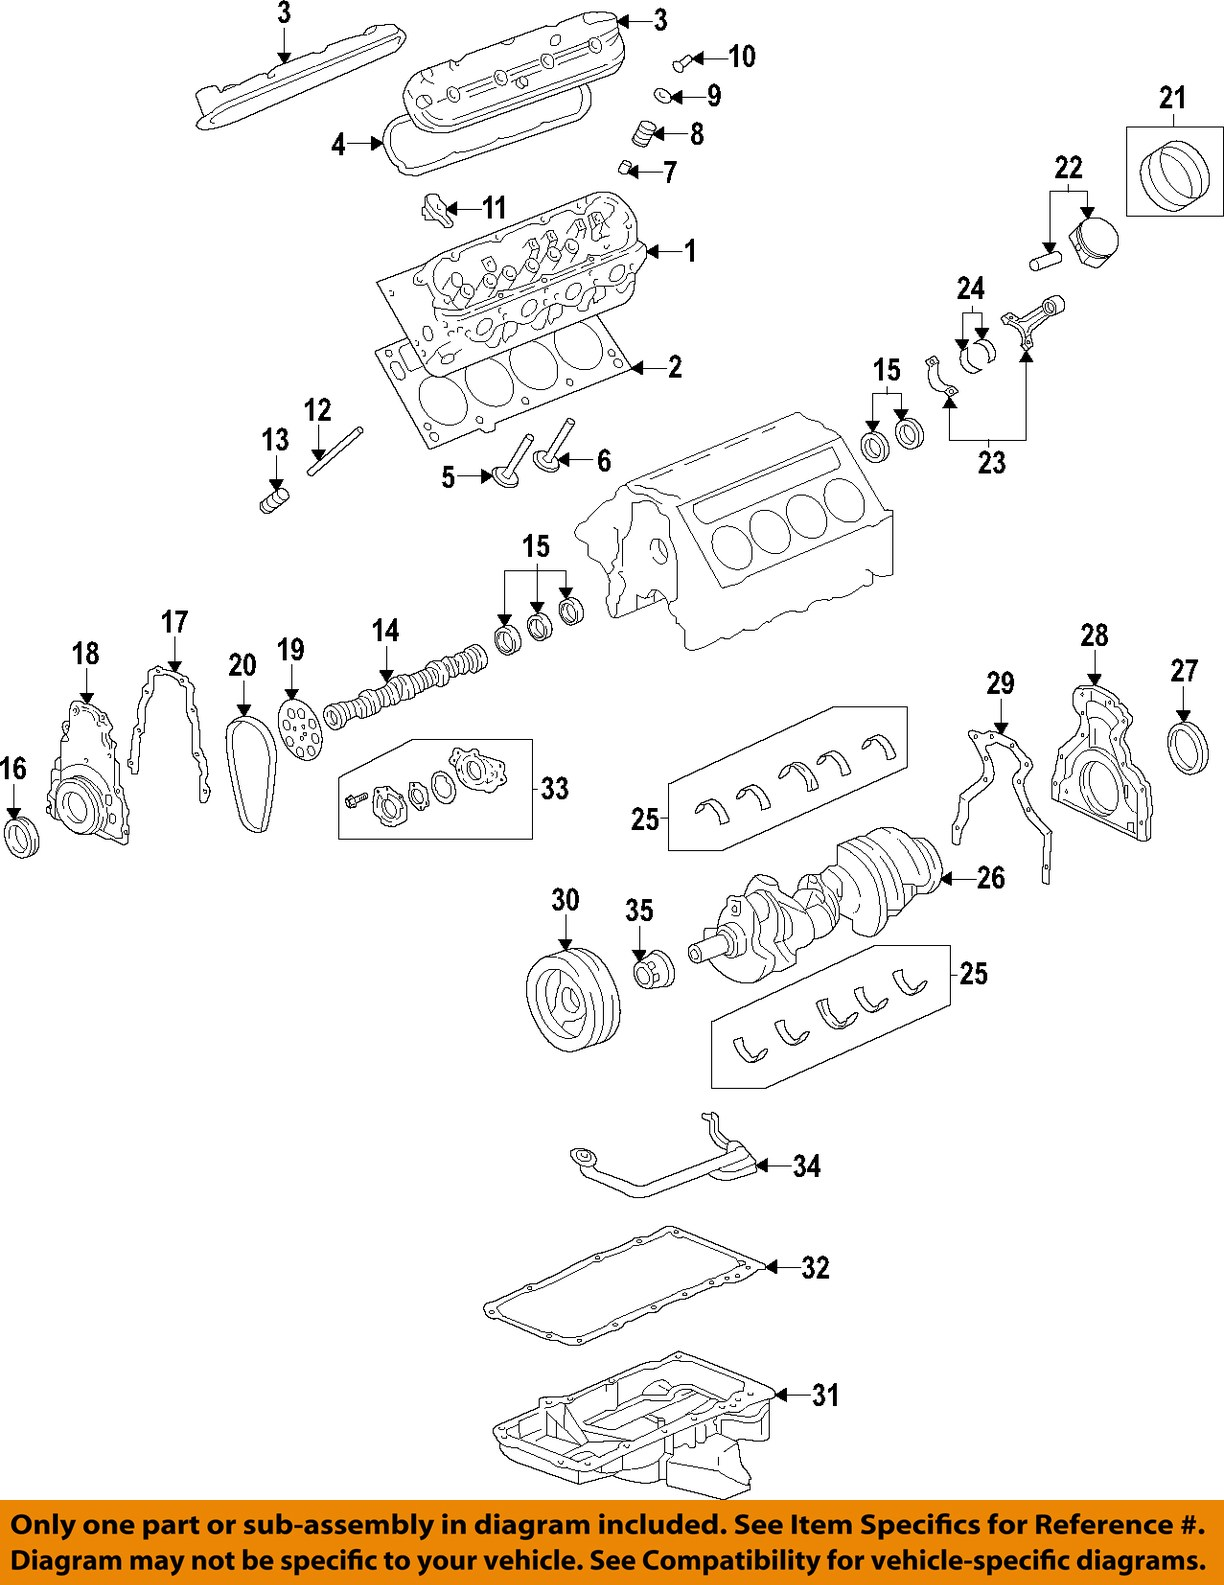 Gm 350 Engine Diagram Wiring Library Kia Rio 5 On Only Genuine Oe Factory Original Item